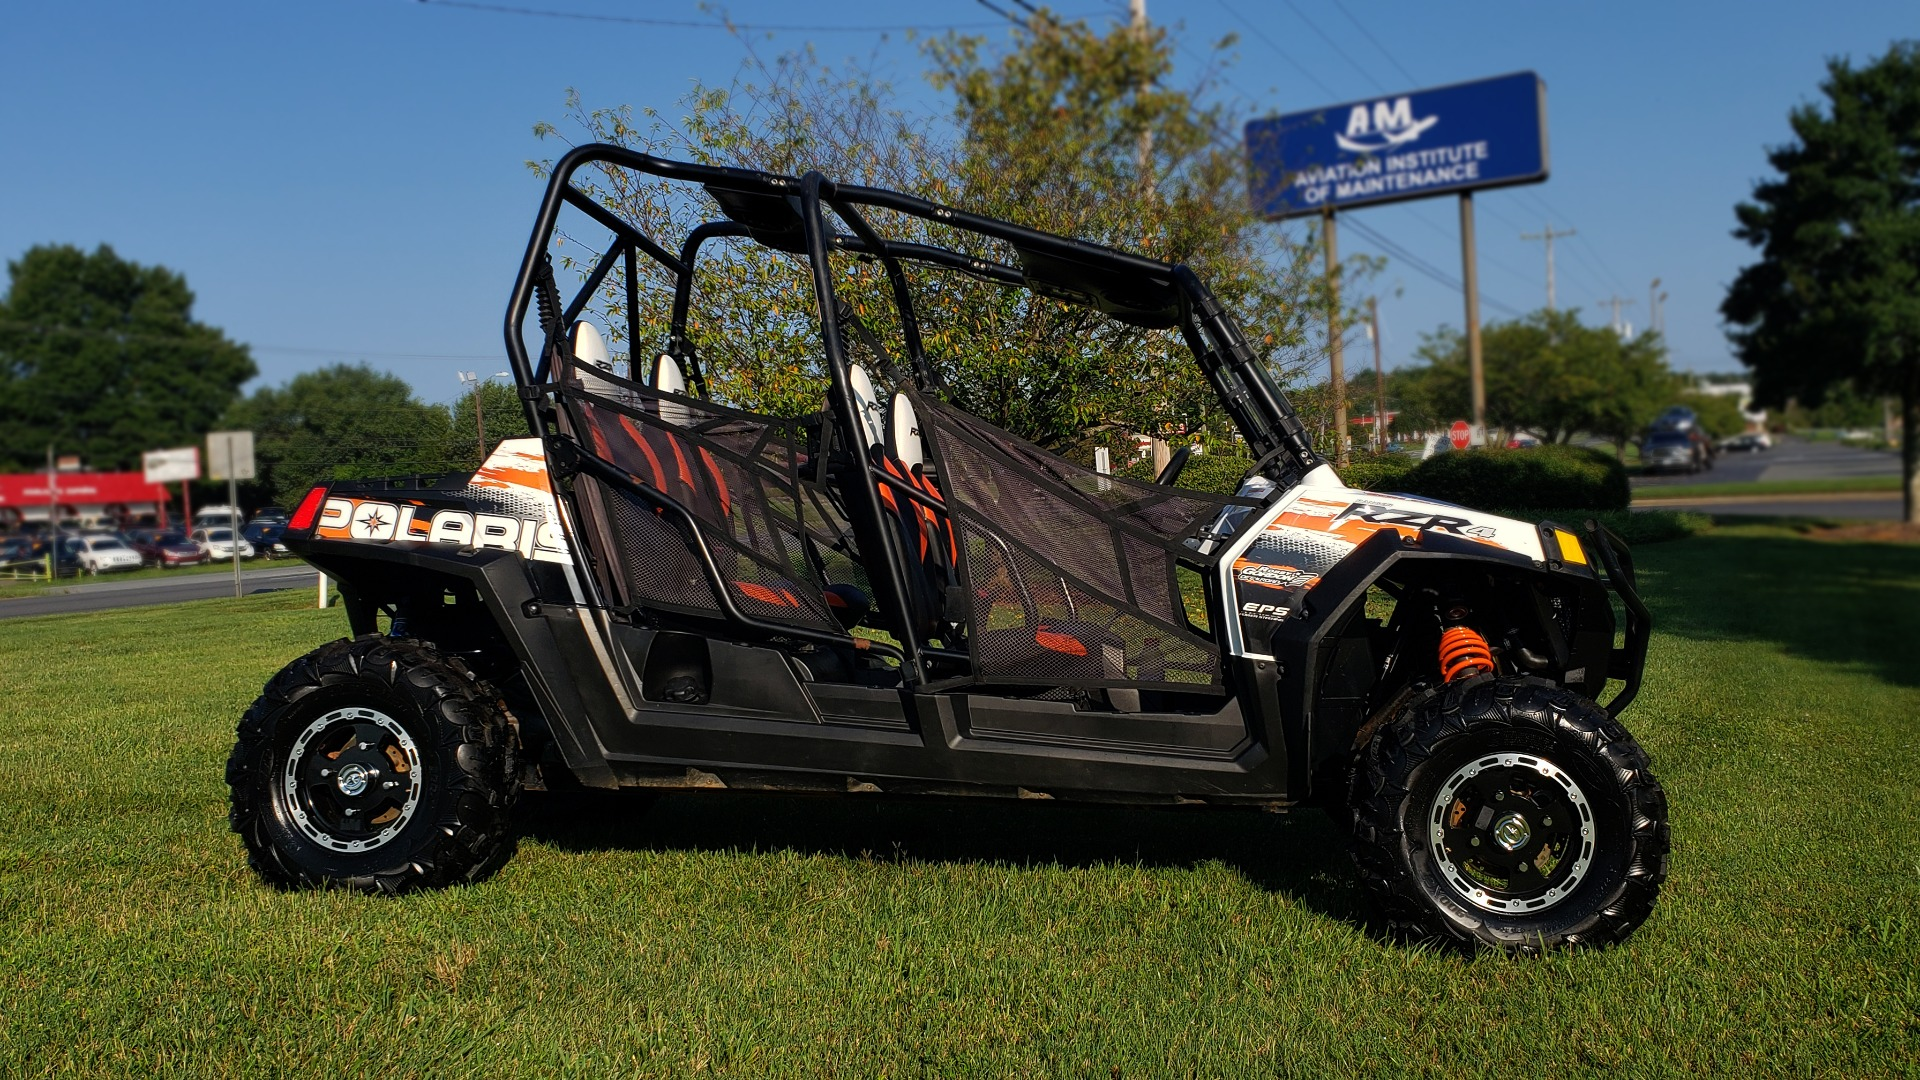 Used 2012 POLARIS RANGER RZR4 / HO 800 EFI / IPHONE CONNECT / SPEAKERS / NEW TIRES for sale Sold at Formula Imports in Charlotte NC 28227 7